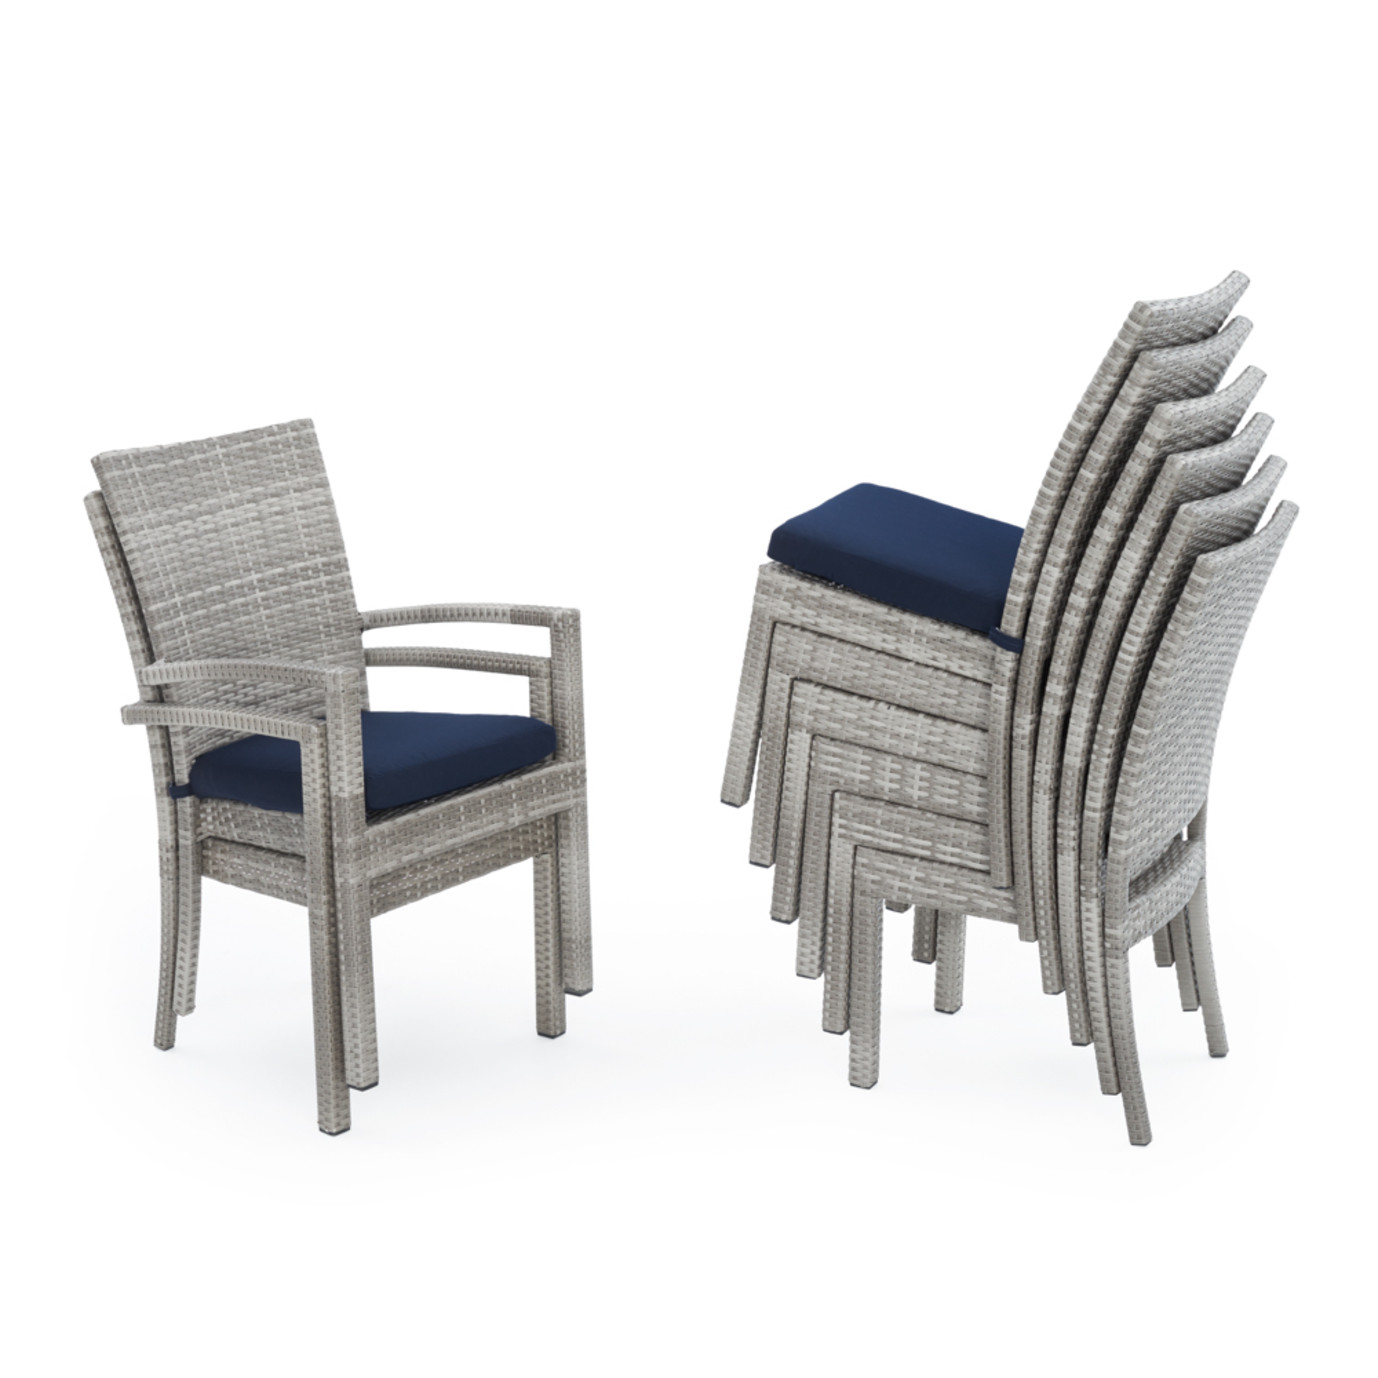 Cannes™ Woven Dining Set - Navy Blue